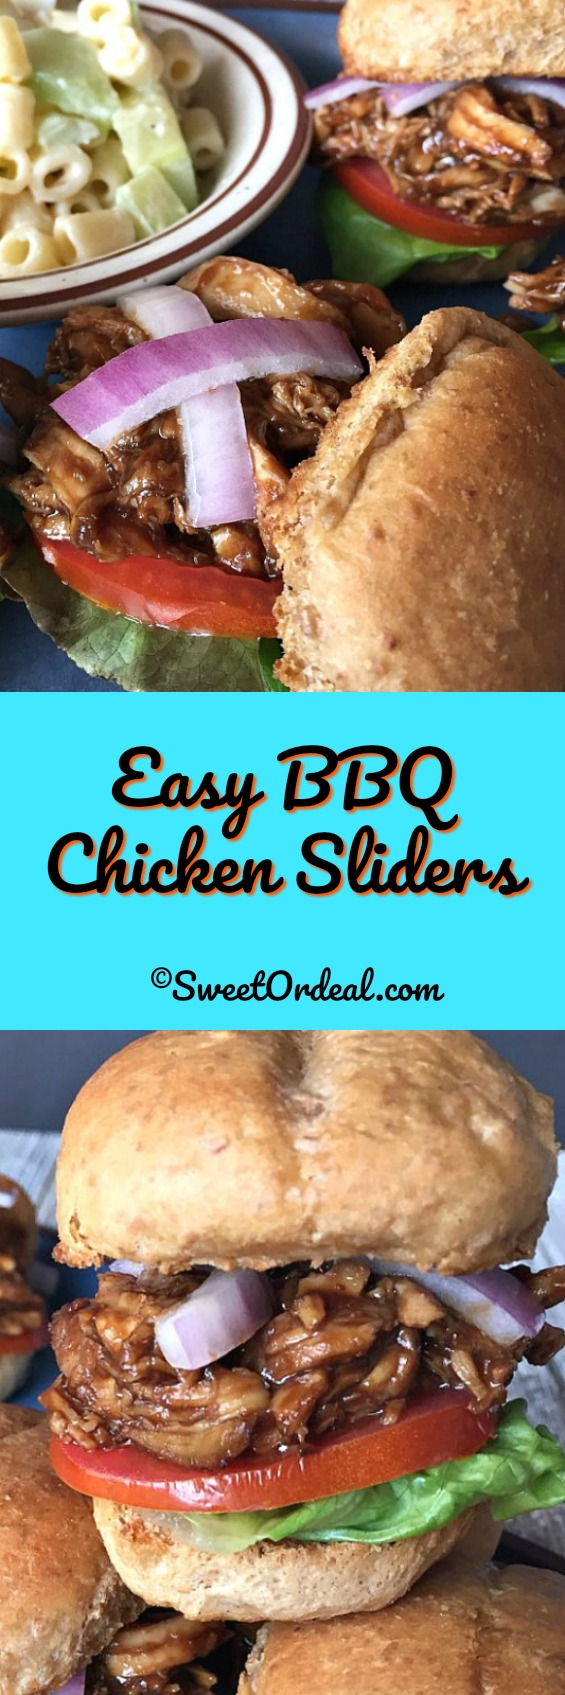 Easy BBQ Chicken Sliders